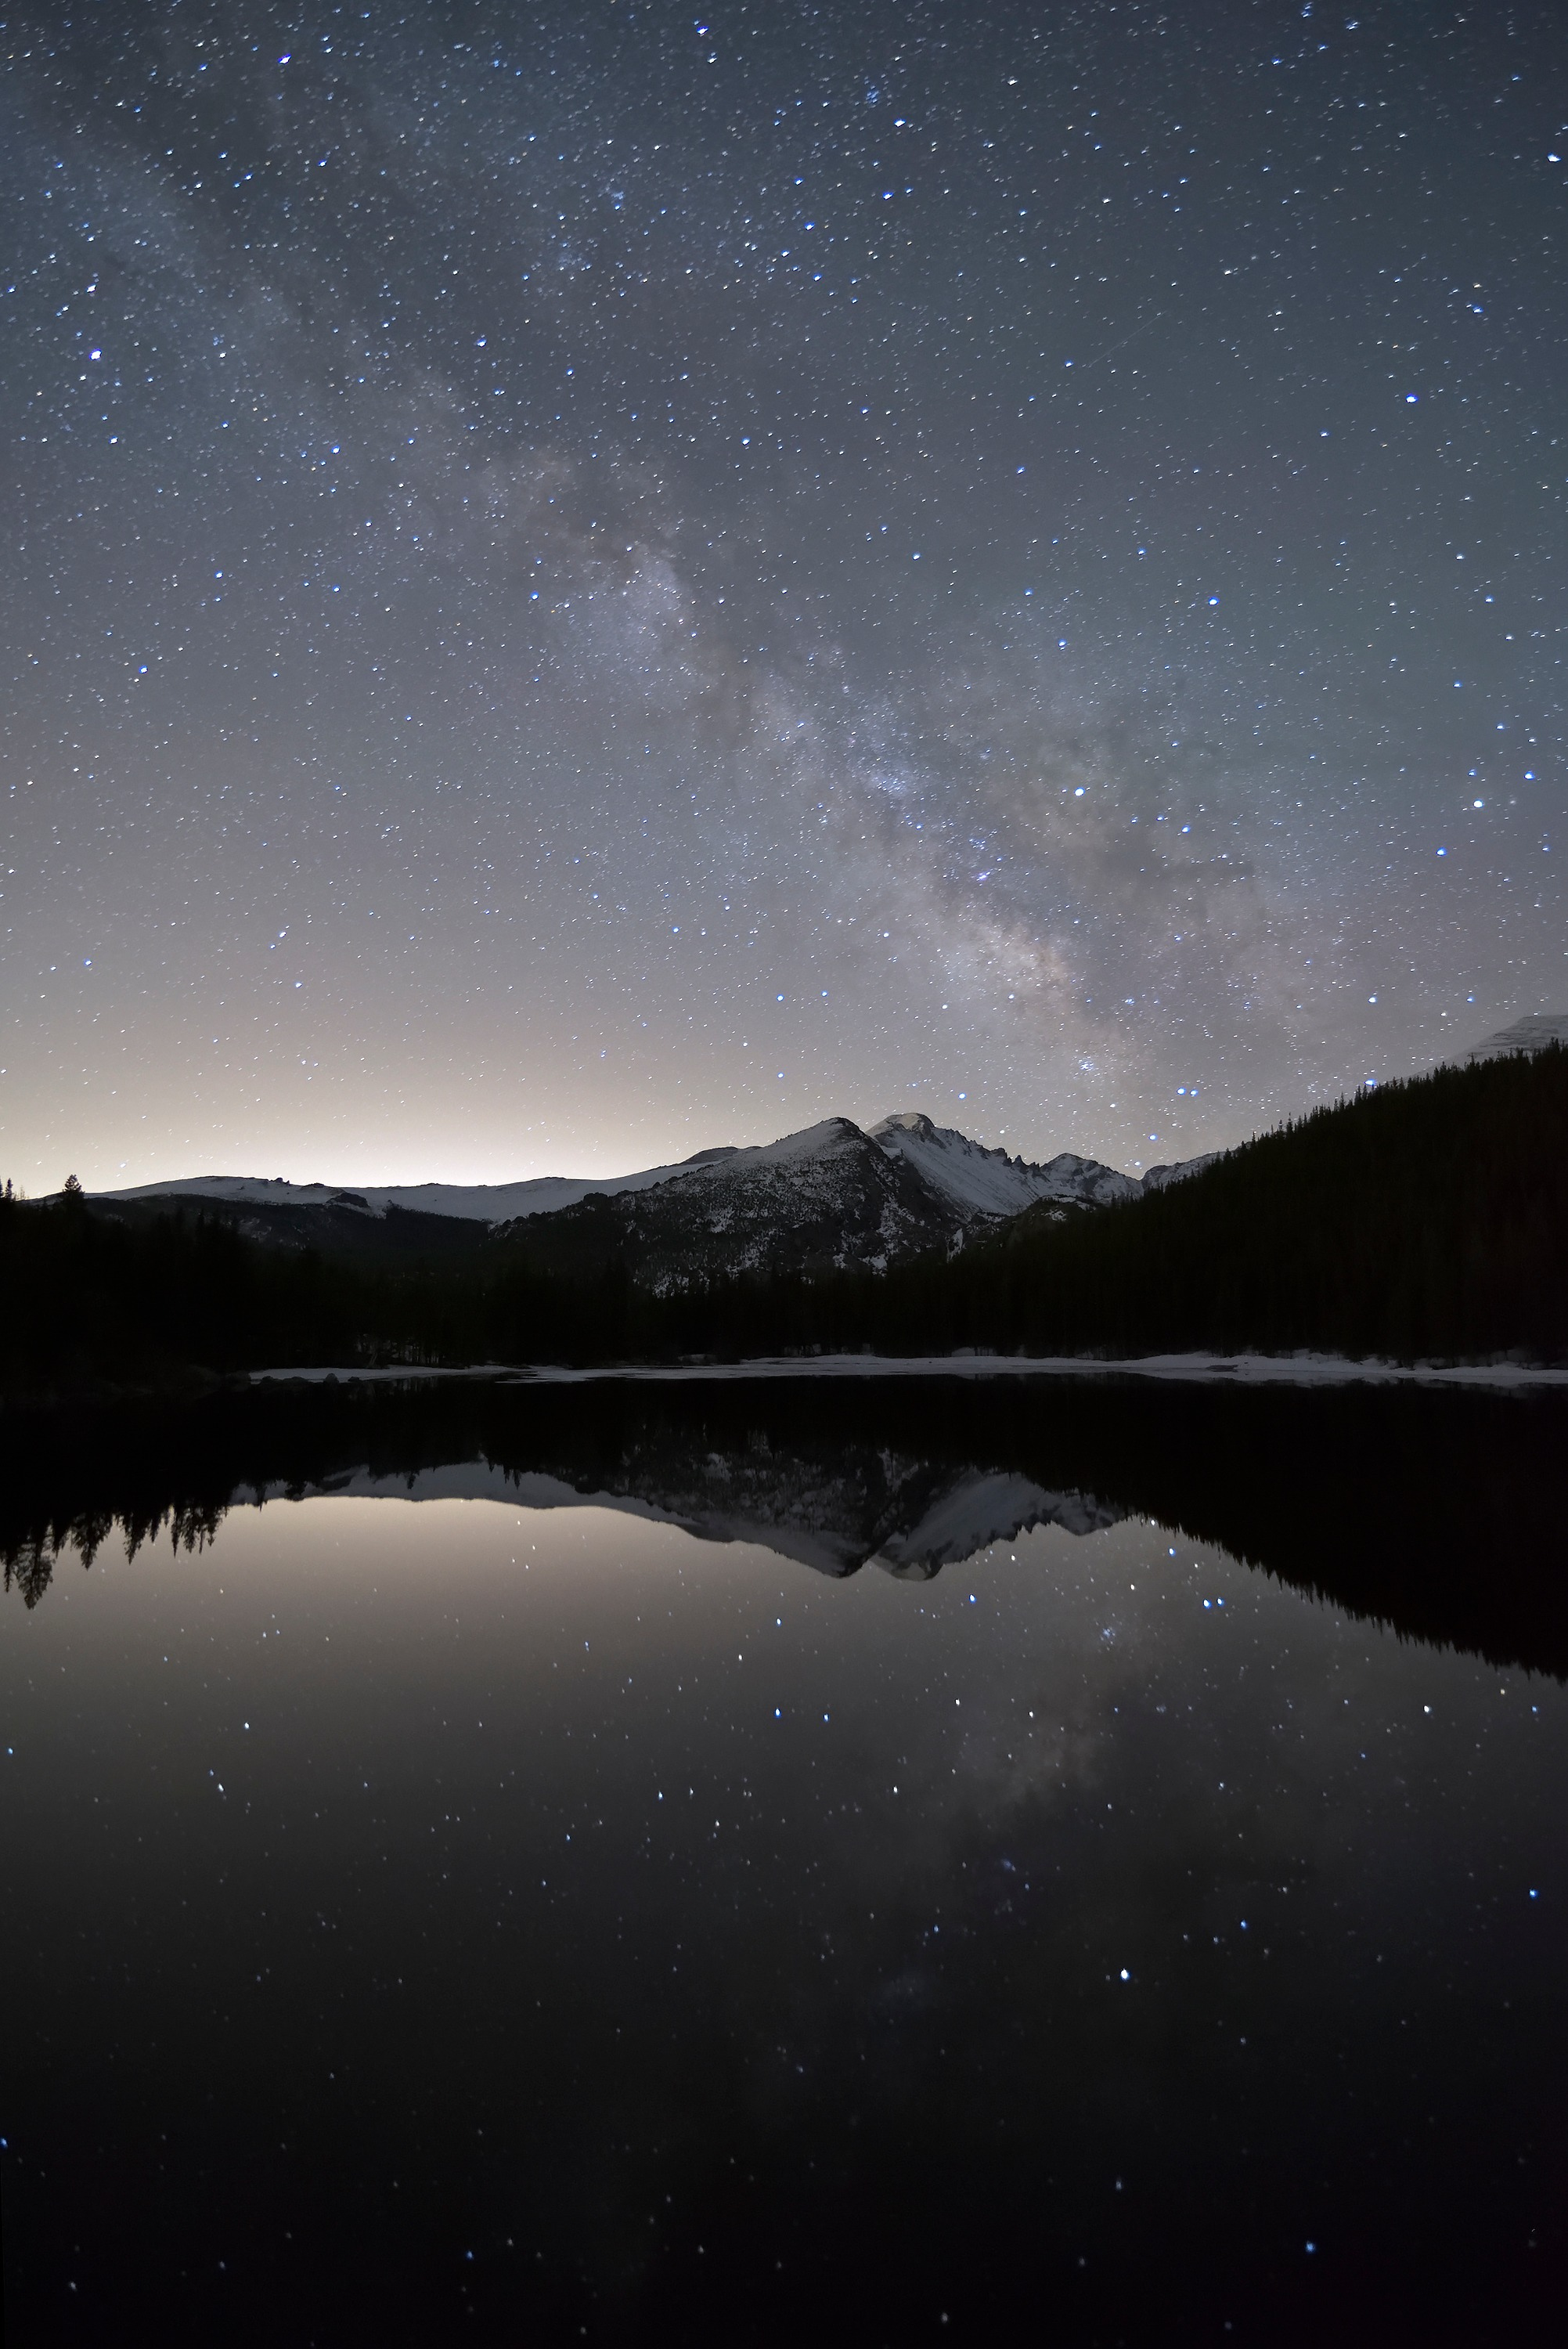 <div class='title'>           Milky Way over Longs Peak         </div>                 <div class='description'>           The Milky Way arcs across the sky over Longs Peak, viewed from Bear Lake in Rocky Mountain National Park         </div>